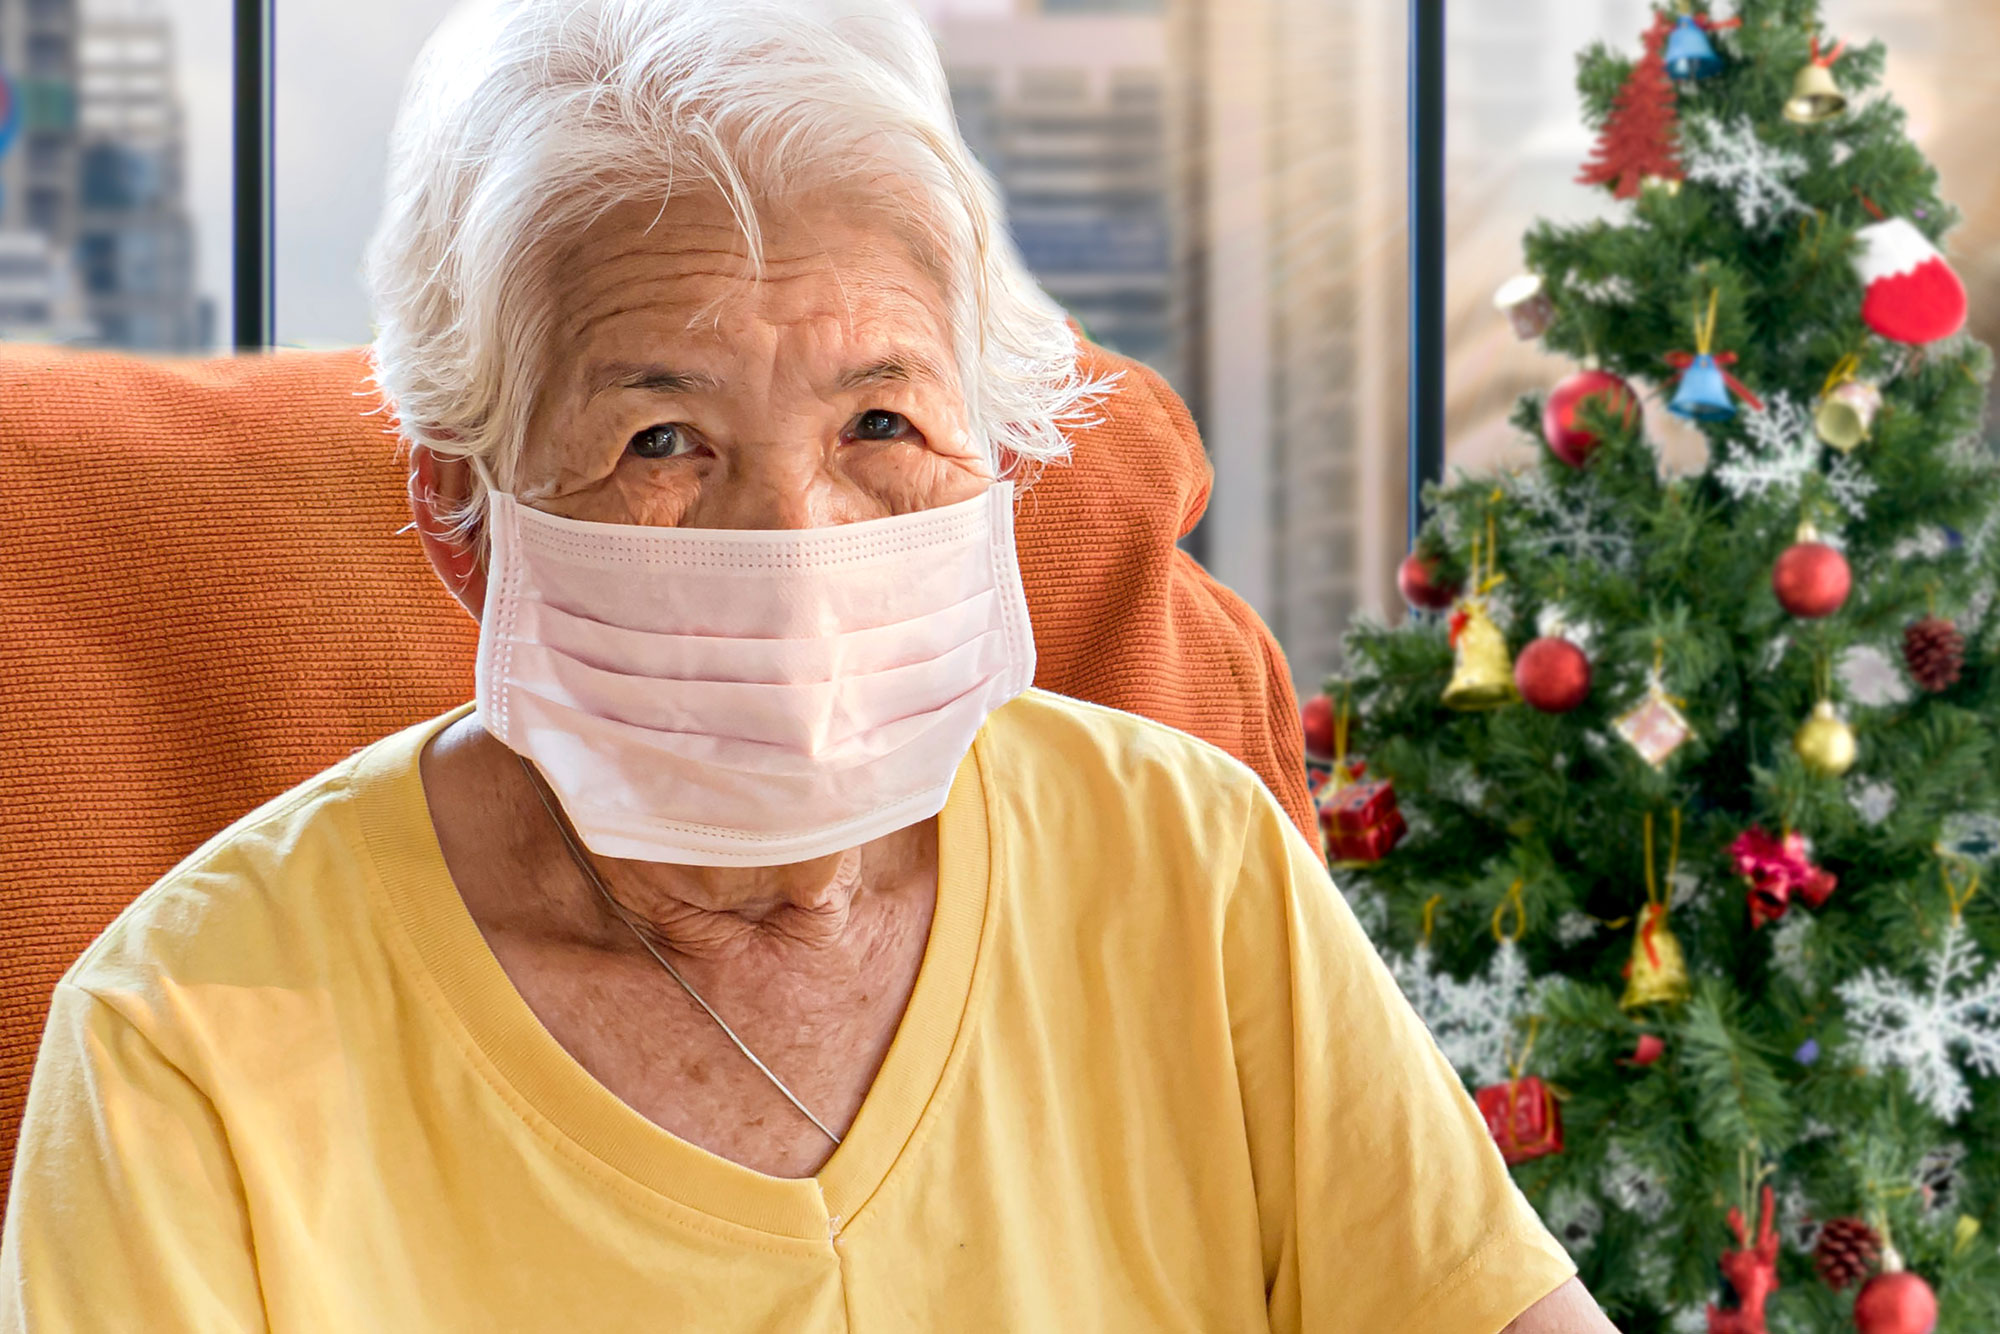 an older woman wearing a mask sits alone next to a Christmas tree